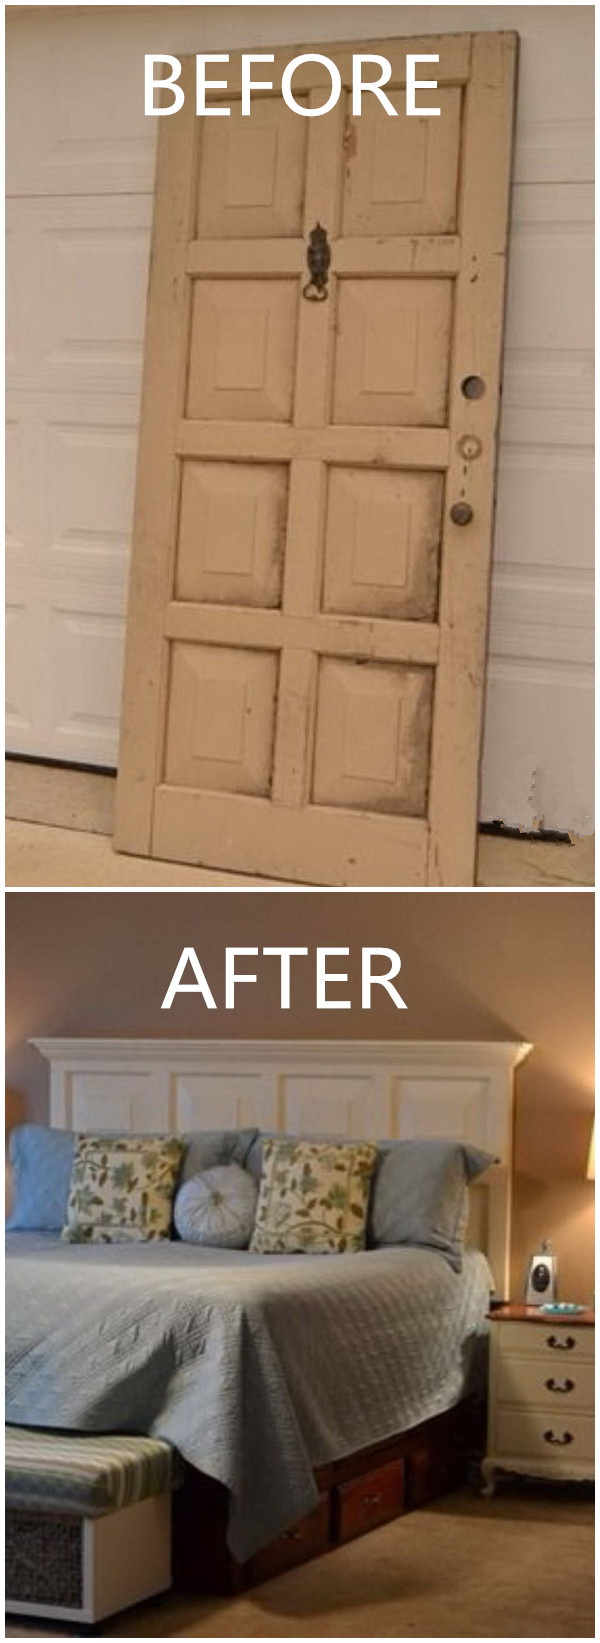 25 Awesome Diy Furniture Makeover Ideas Creative Ways To